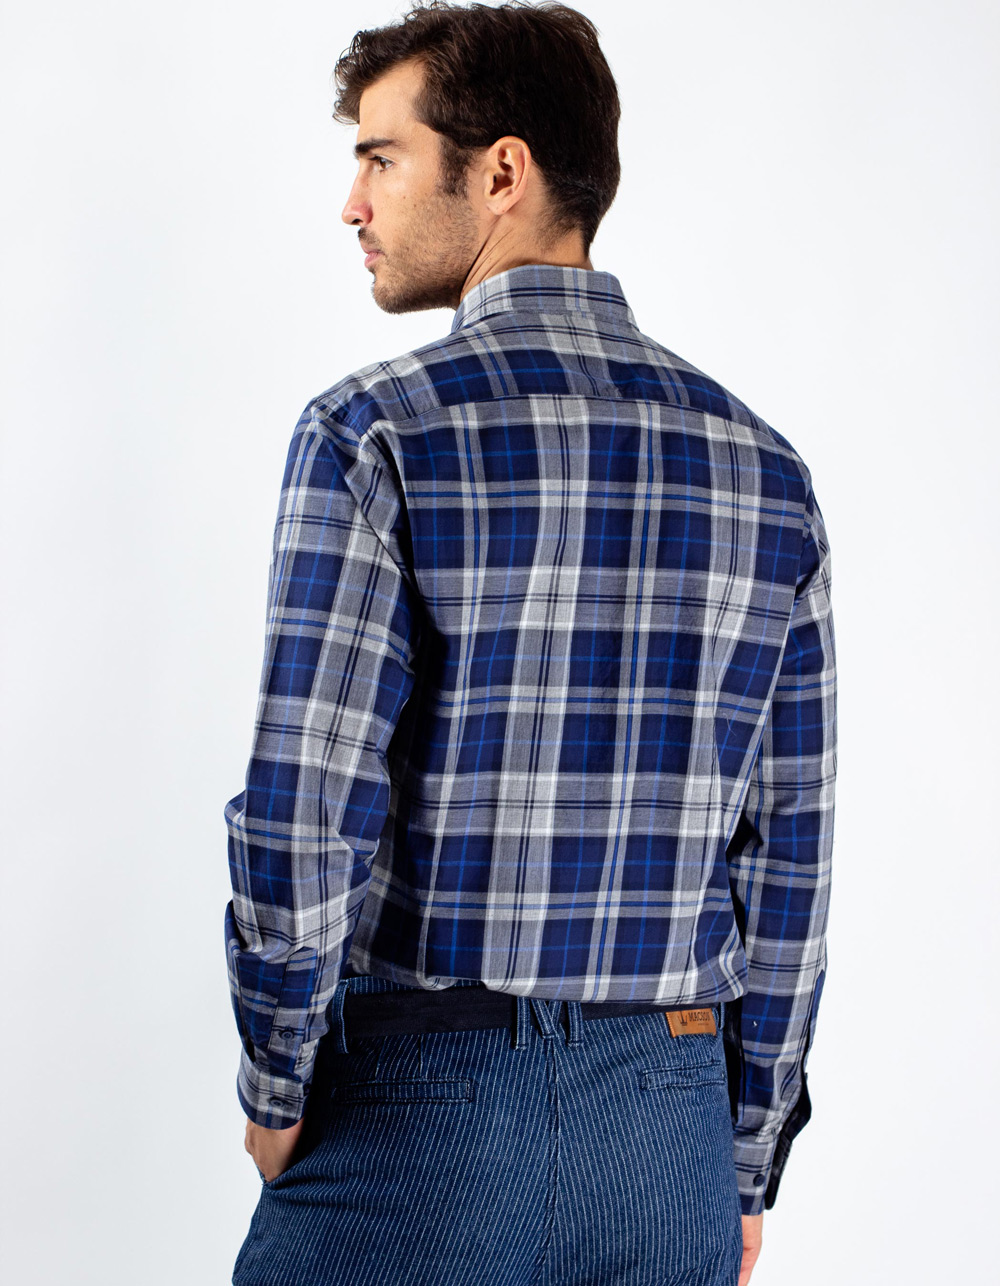 Camisa de cuadros - Backside